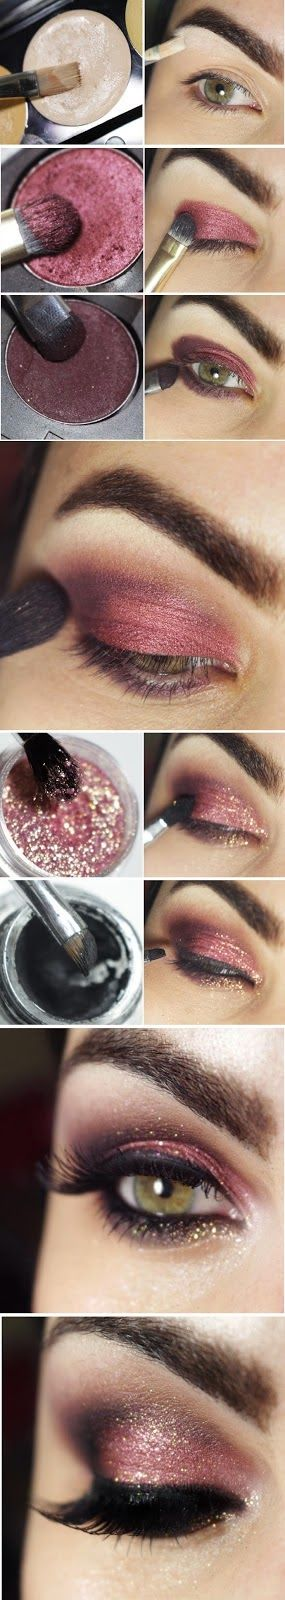 Makeup Artist ^^ | https://pinterest.com/makeupartist4ever/  Beautiful look with this Eyeshadow technique